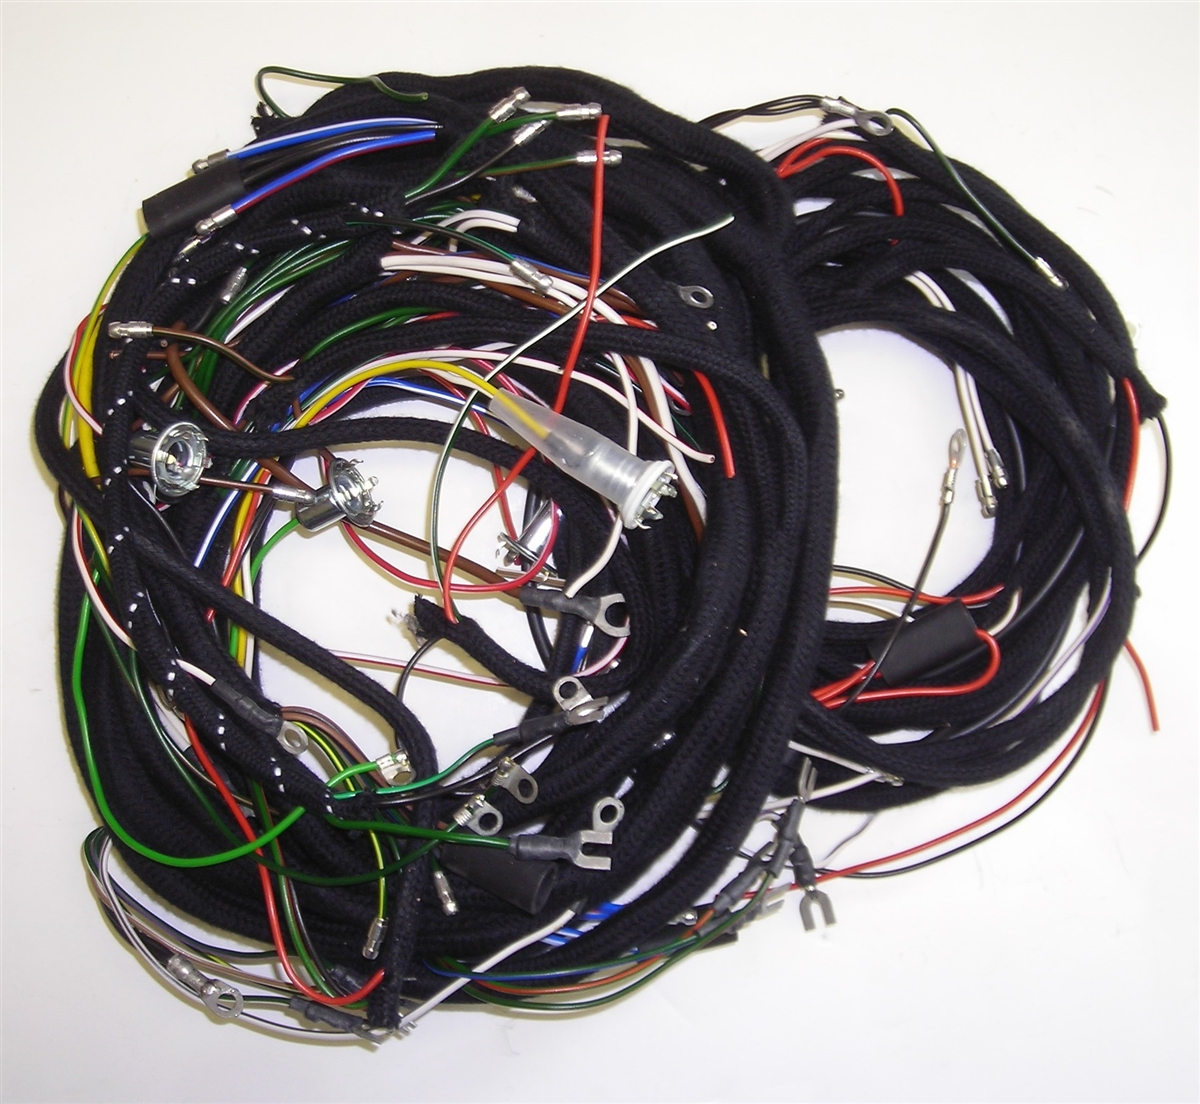 hight resolution of austin healey bn6 1958 harness set pvc cable